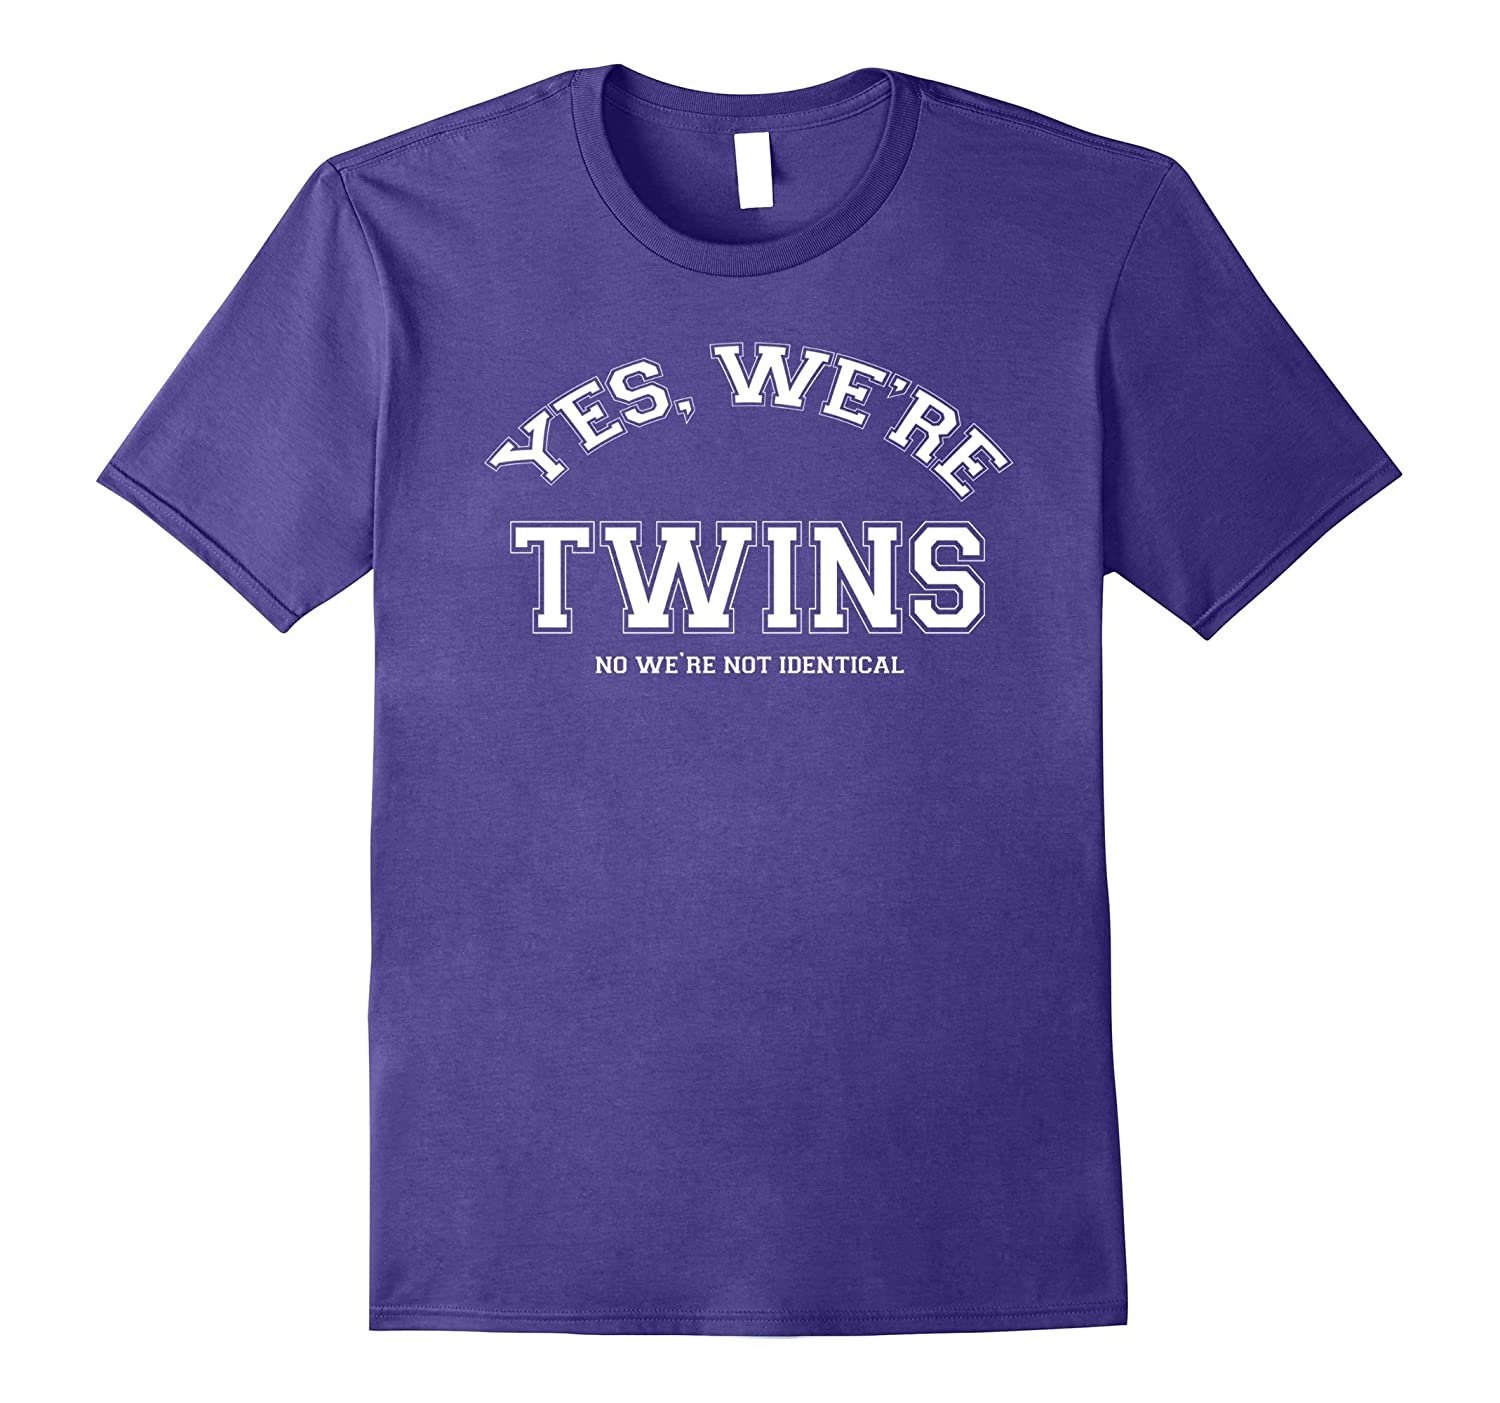 Yes, We're TWINS, no we're not identical T-shirt funny twin-Art